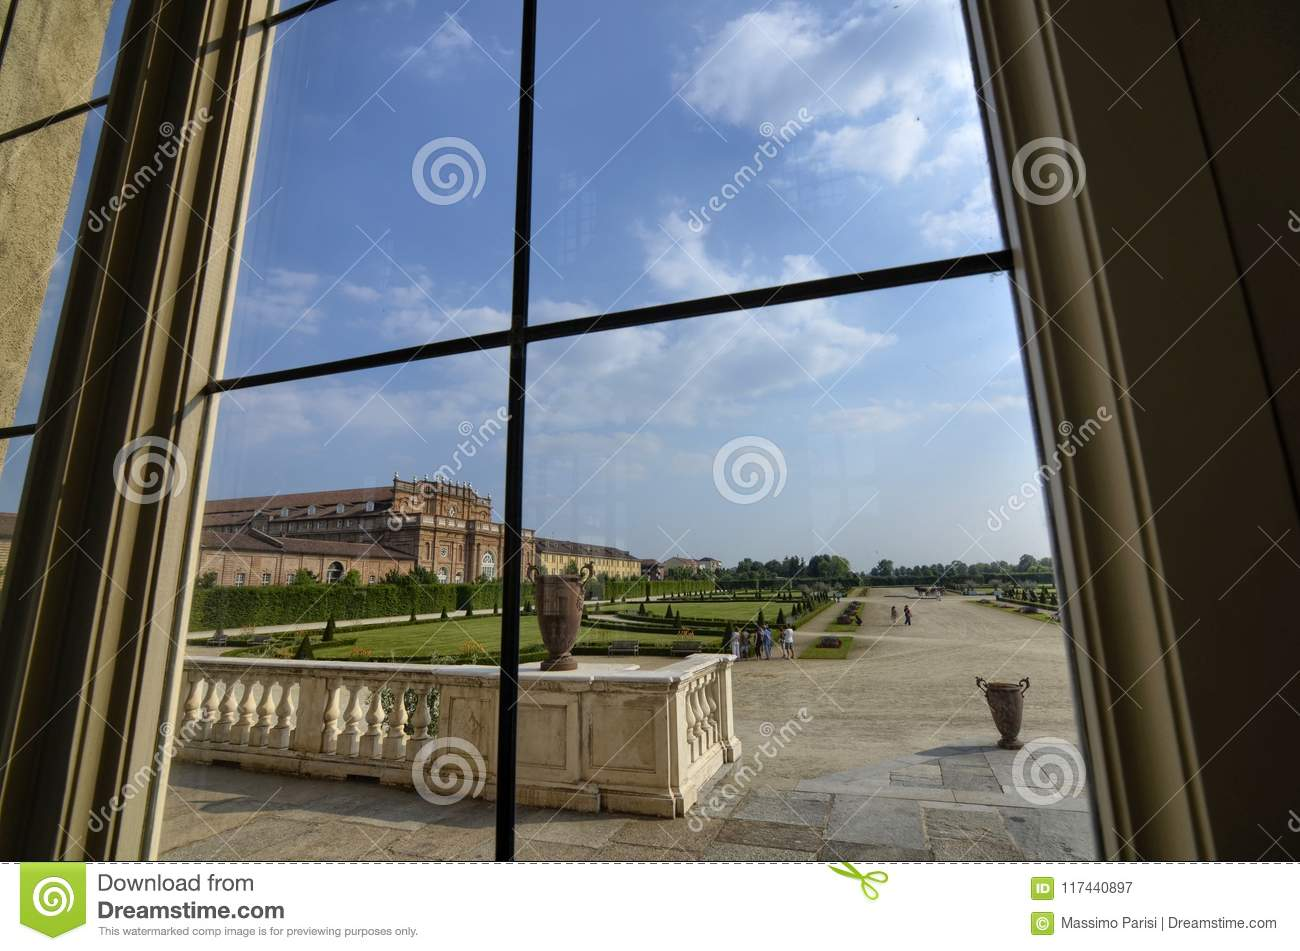 Venaria Reale, Piedmont region, Italy. June 2017. A look out on the majestic gardens of the palace